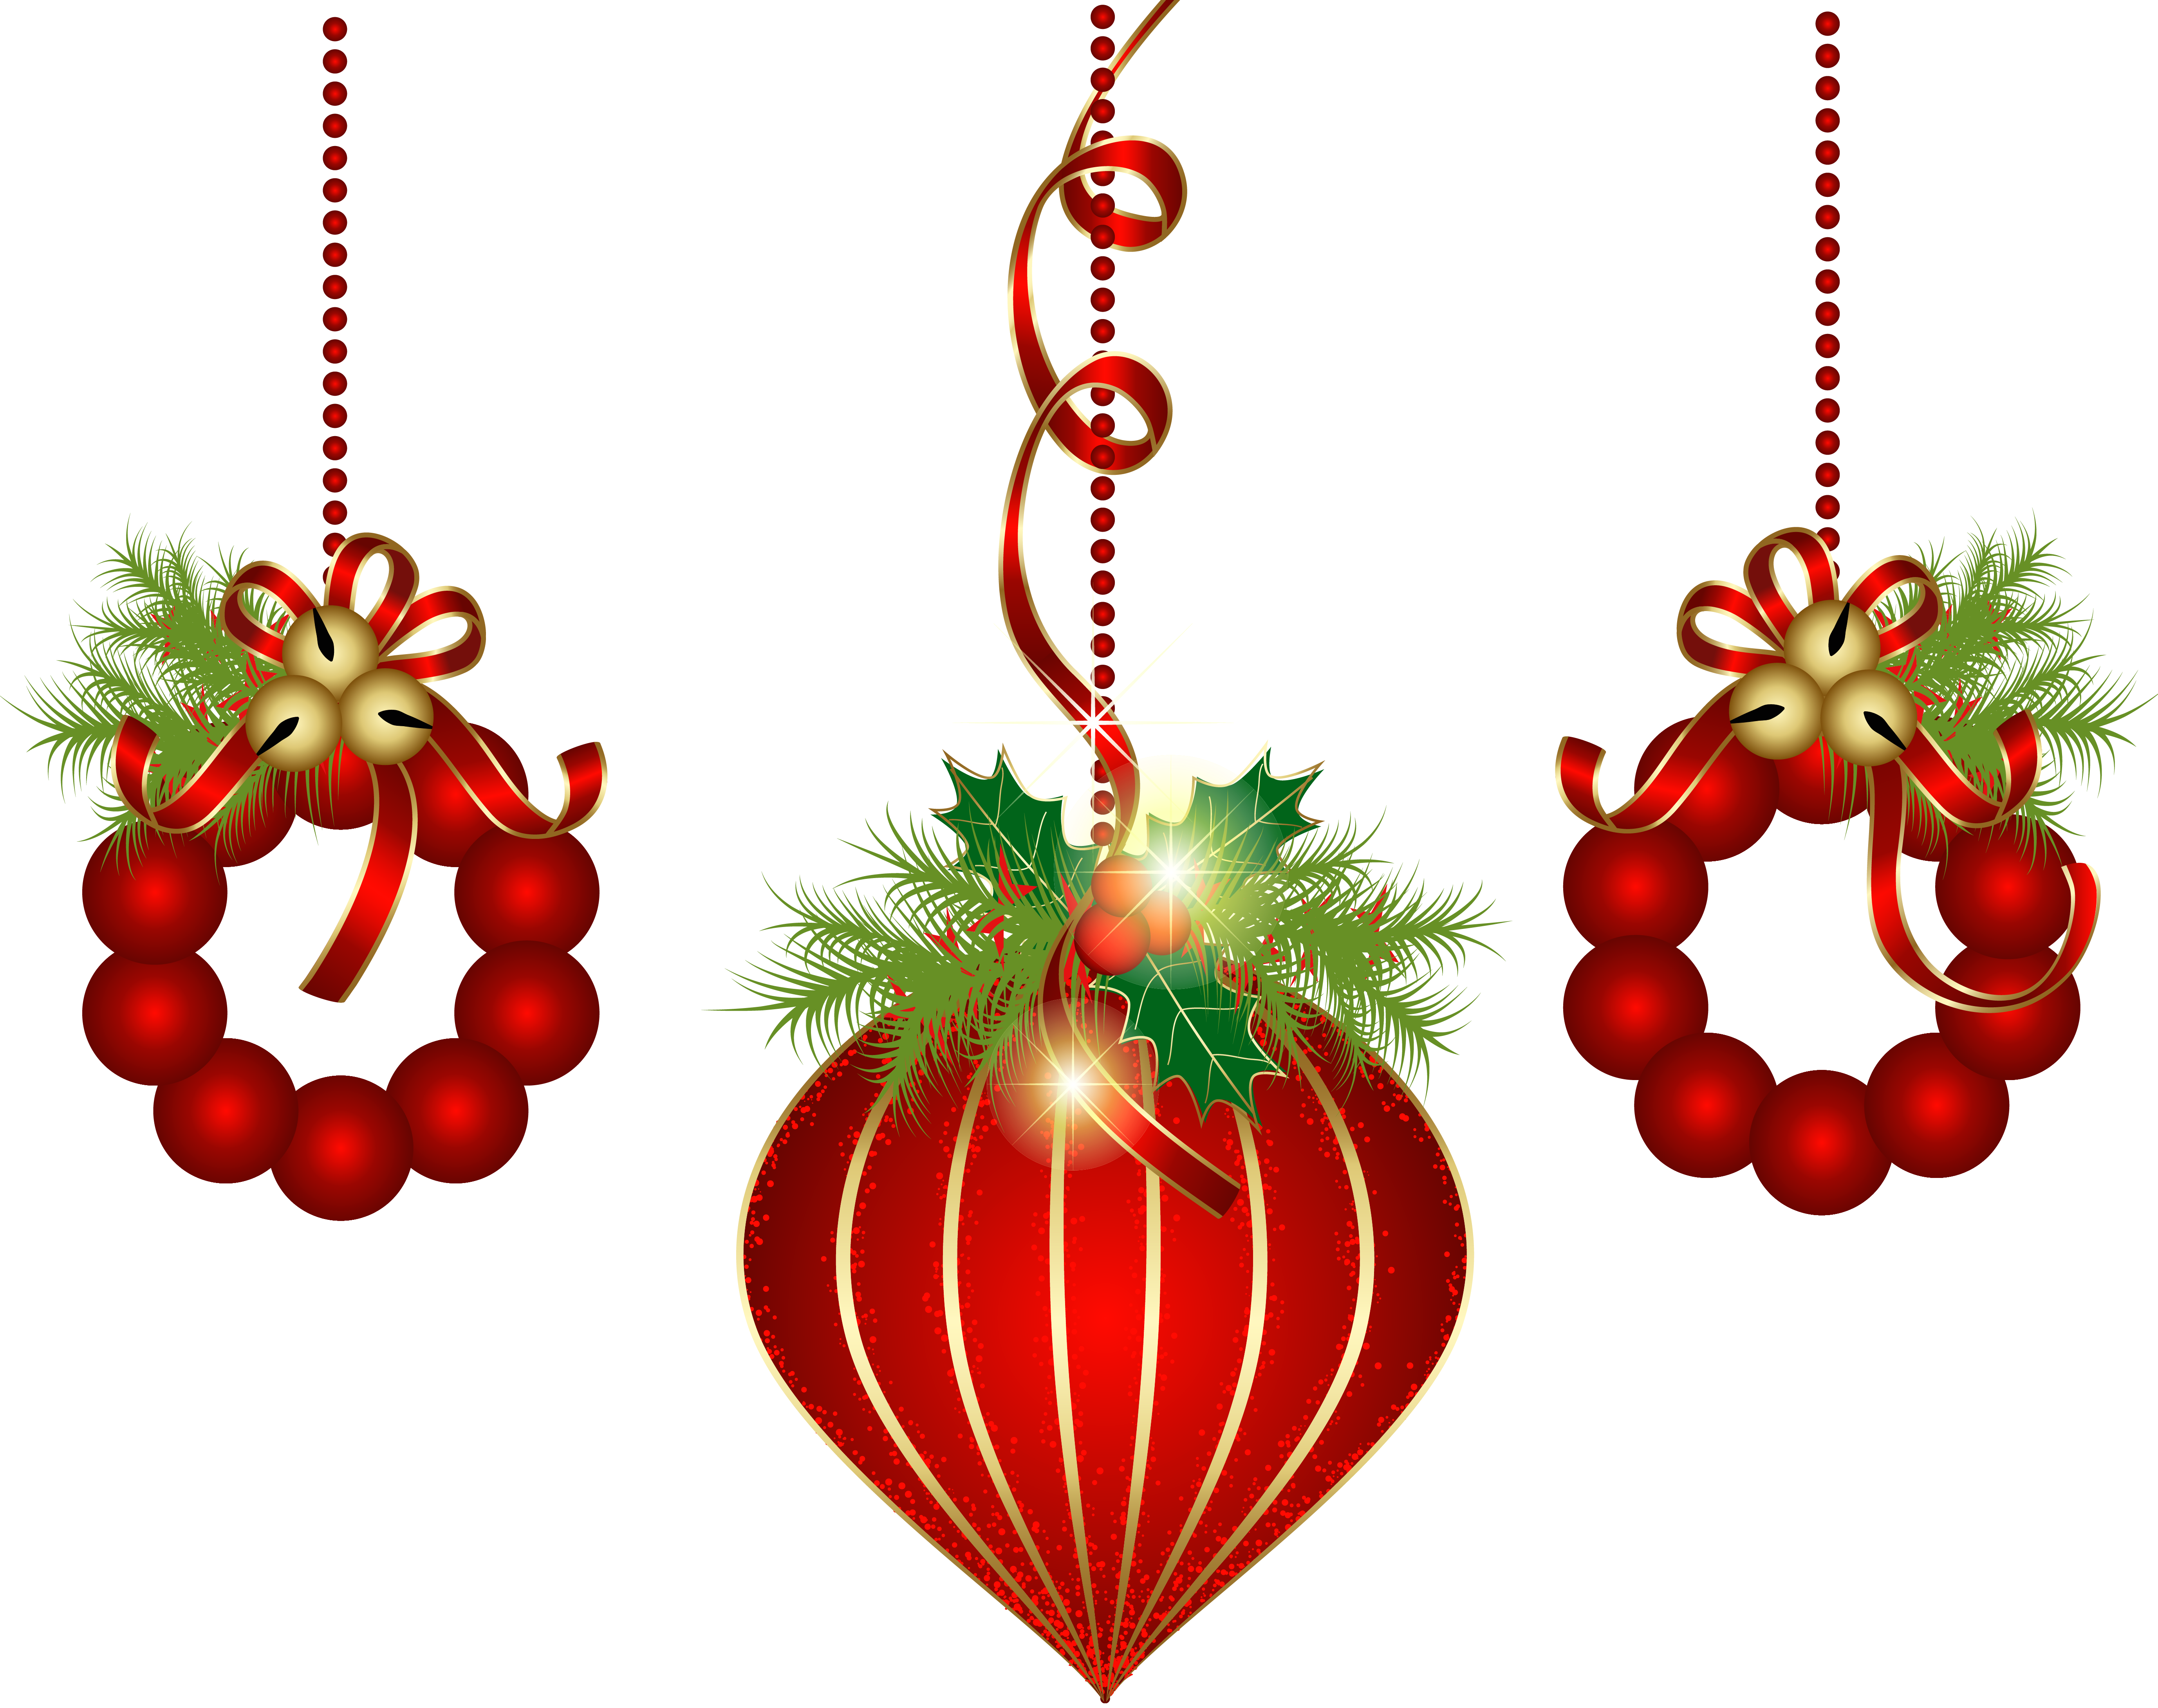 png royalty free stock Grinch clipart december. Transparent red christmas ornaments